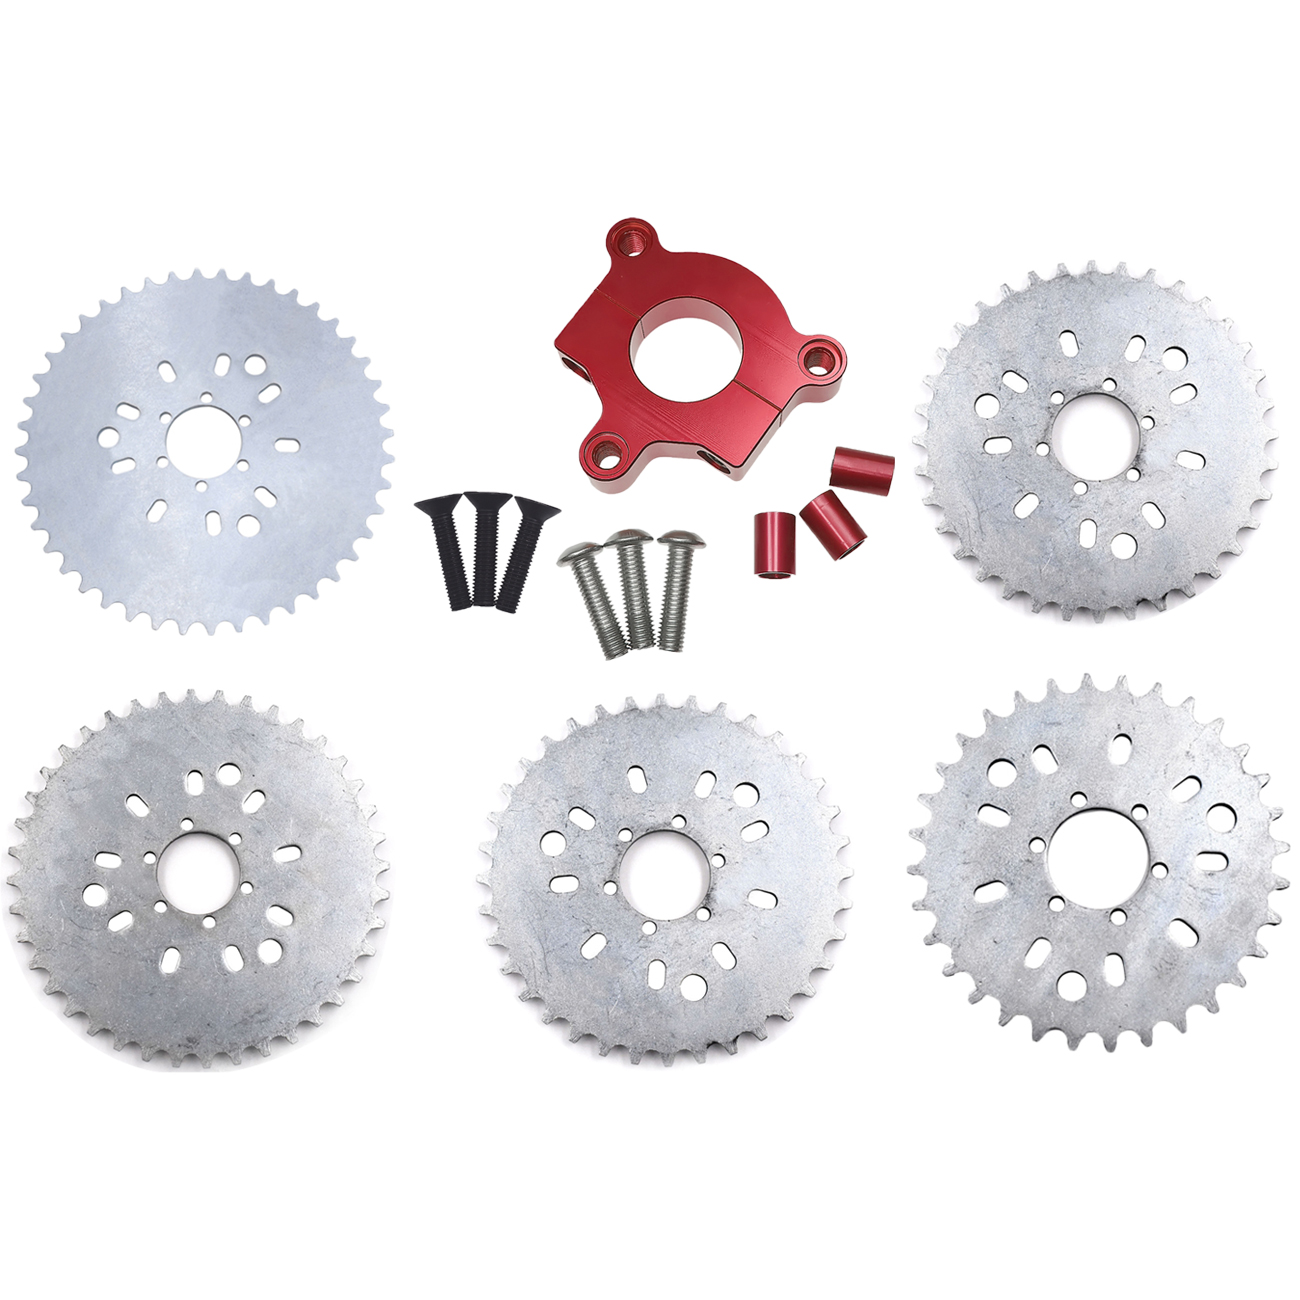 Pouvoir 32T 36T <font><b>38T</b></font> 40T 44T <font><b>Sprocket</b></font> RED CNC Adaptor For 415 Chain Motorized Bike High Quality image